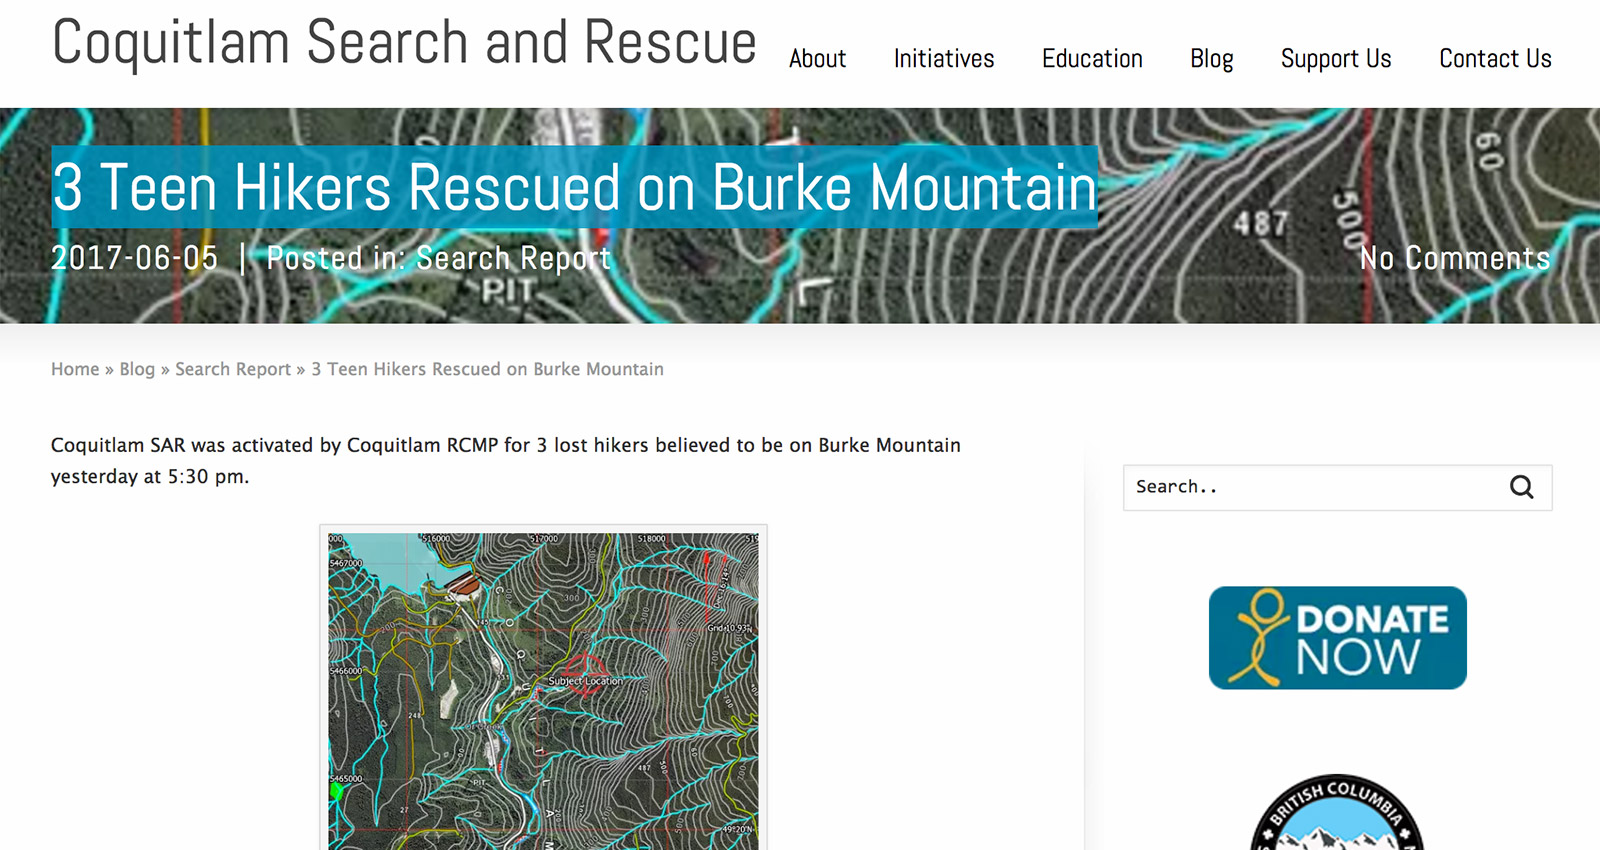 nonprofit blogging example, coquitlam search and rescue uses stories, events, and experience to teach and warn people of dangers